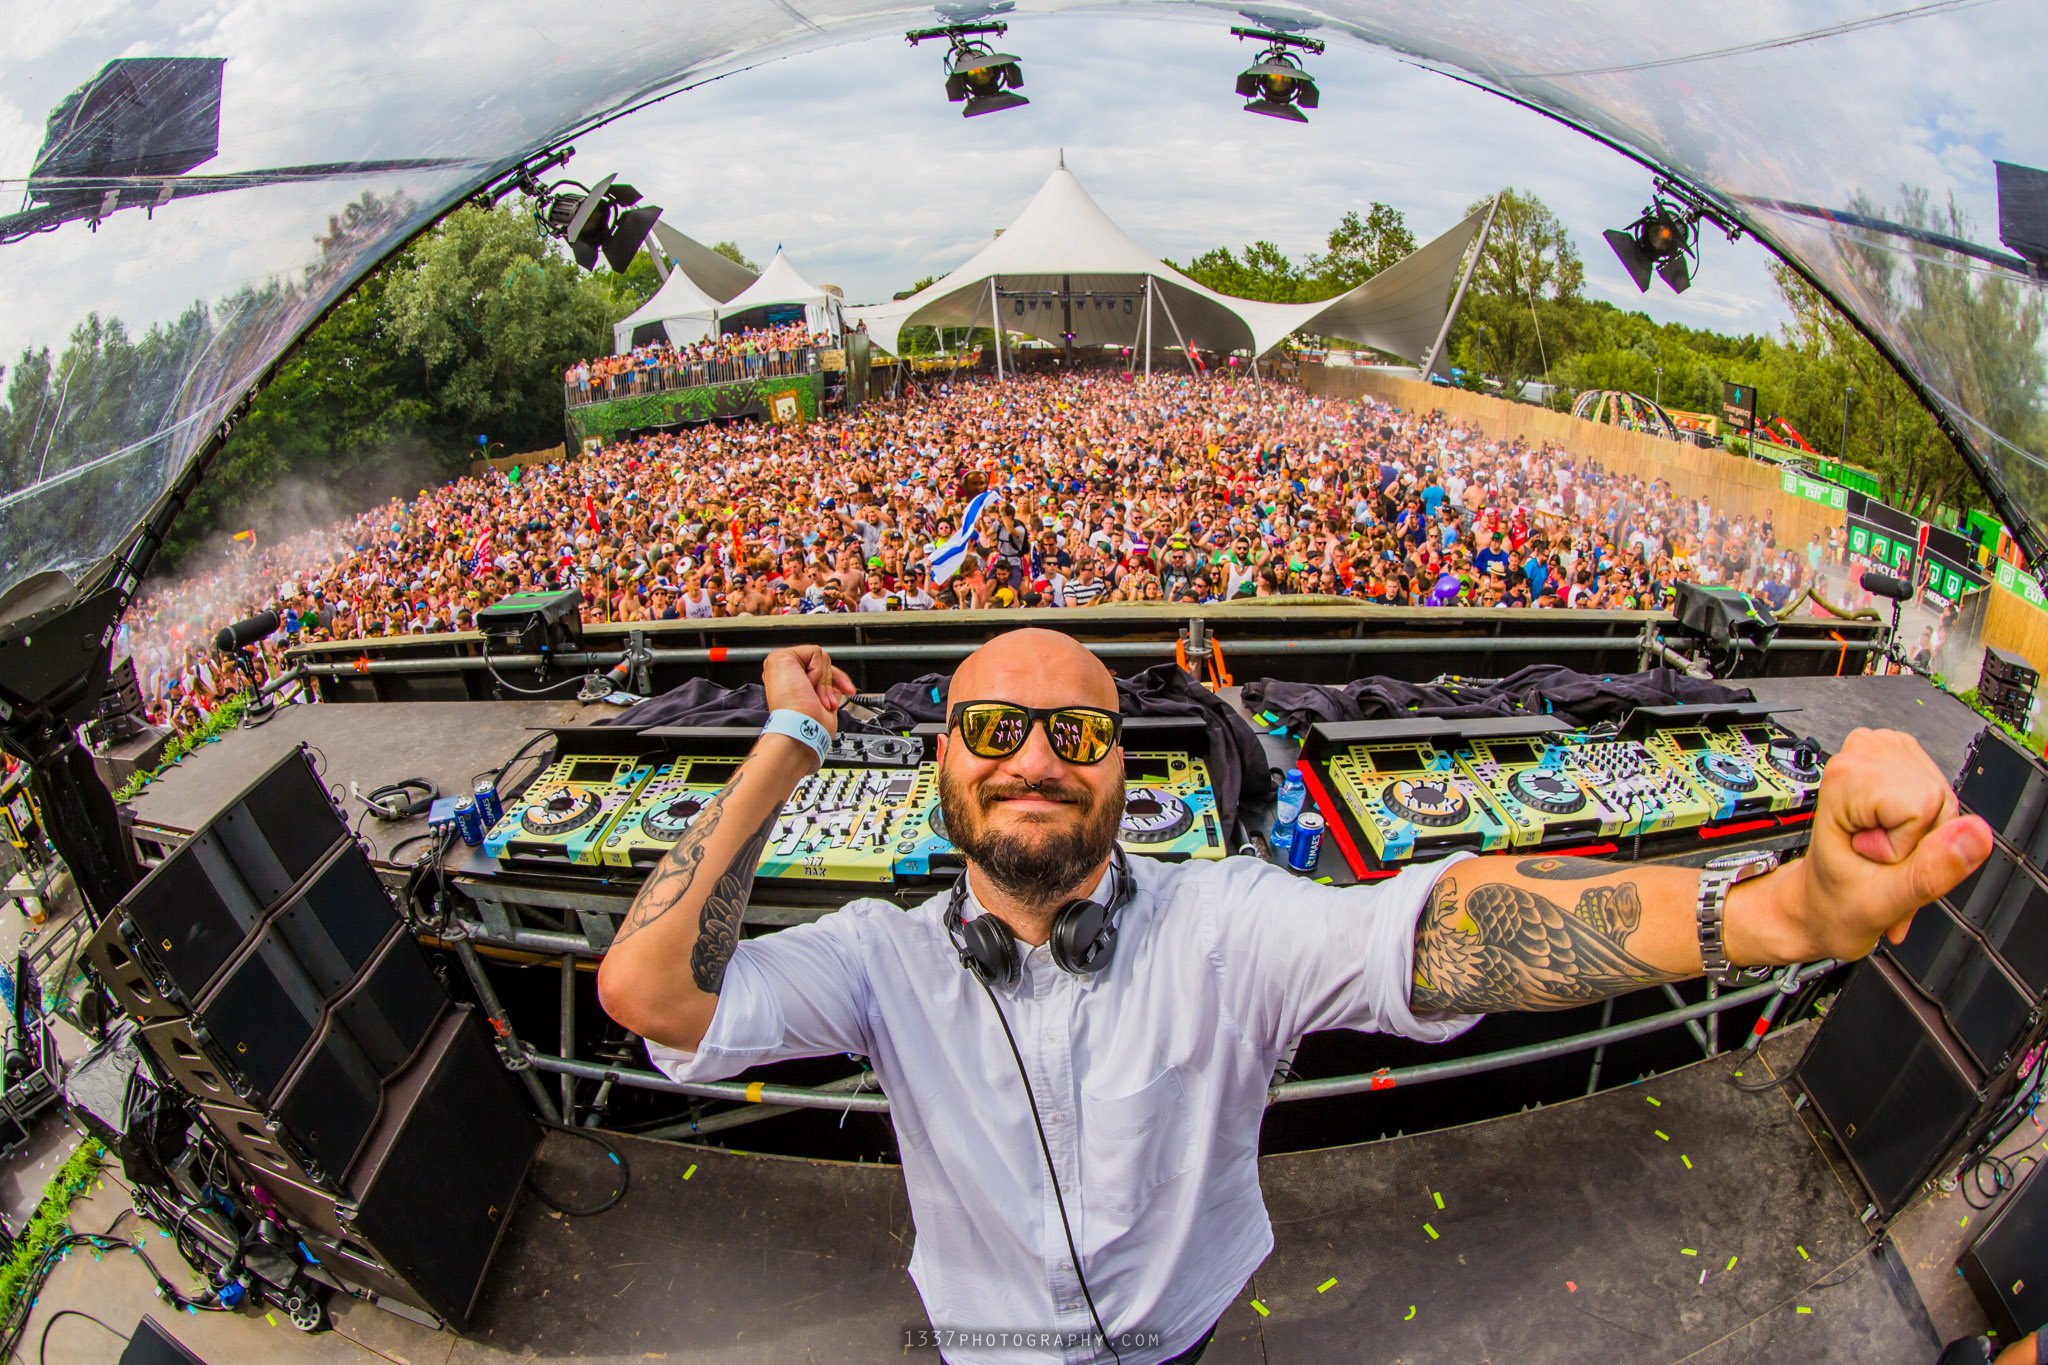 Crookers at Tomorrowland